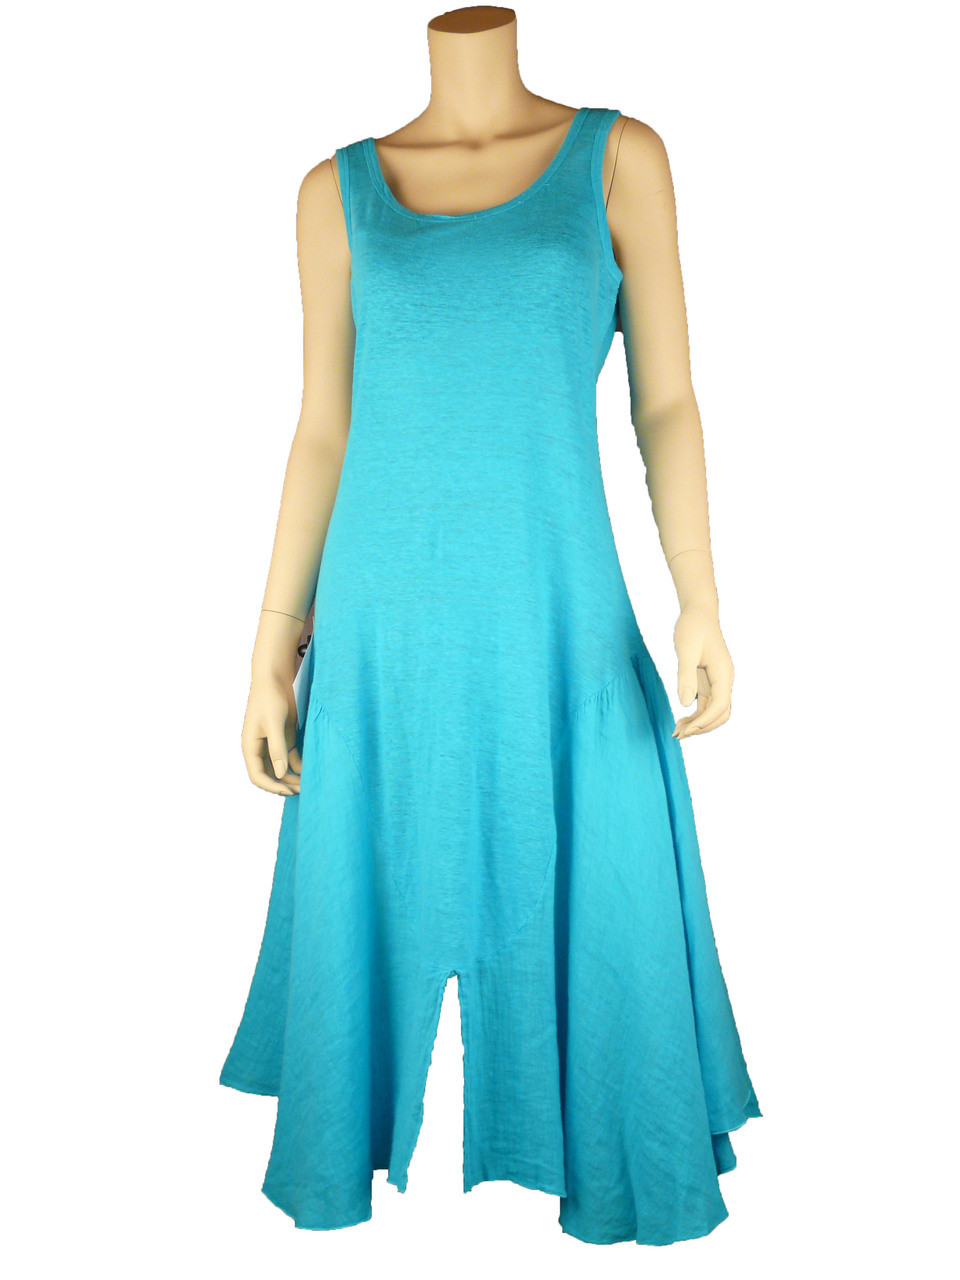 Color Me Cotton CMC Cool & Chic Linen Dress in Caribe Blue CLEARANCE PRICE